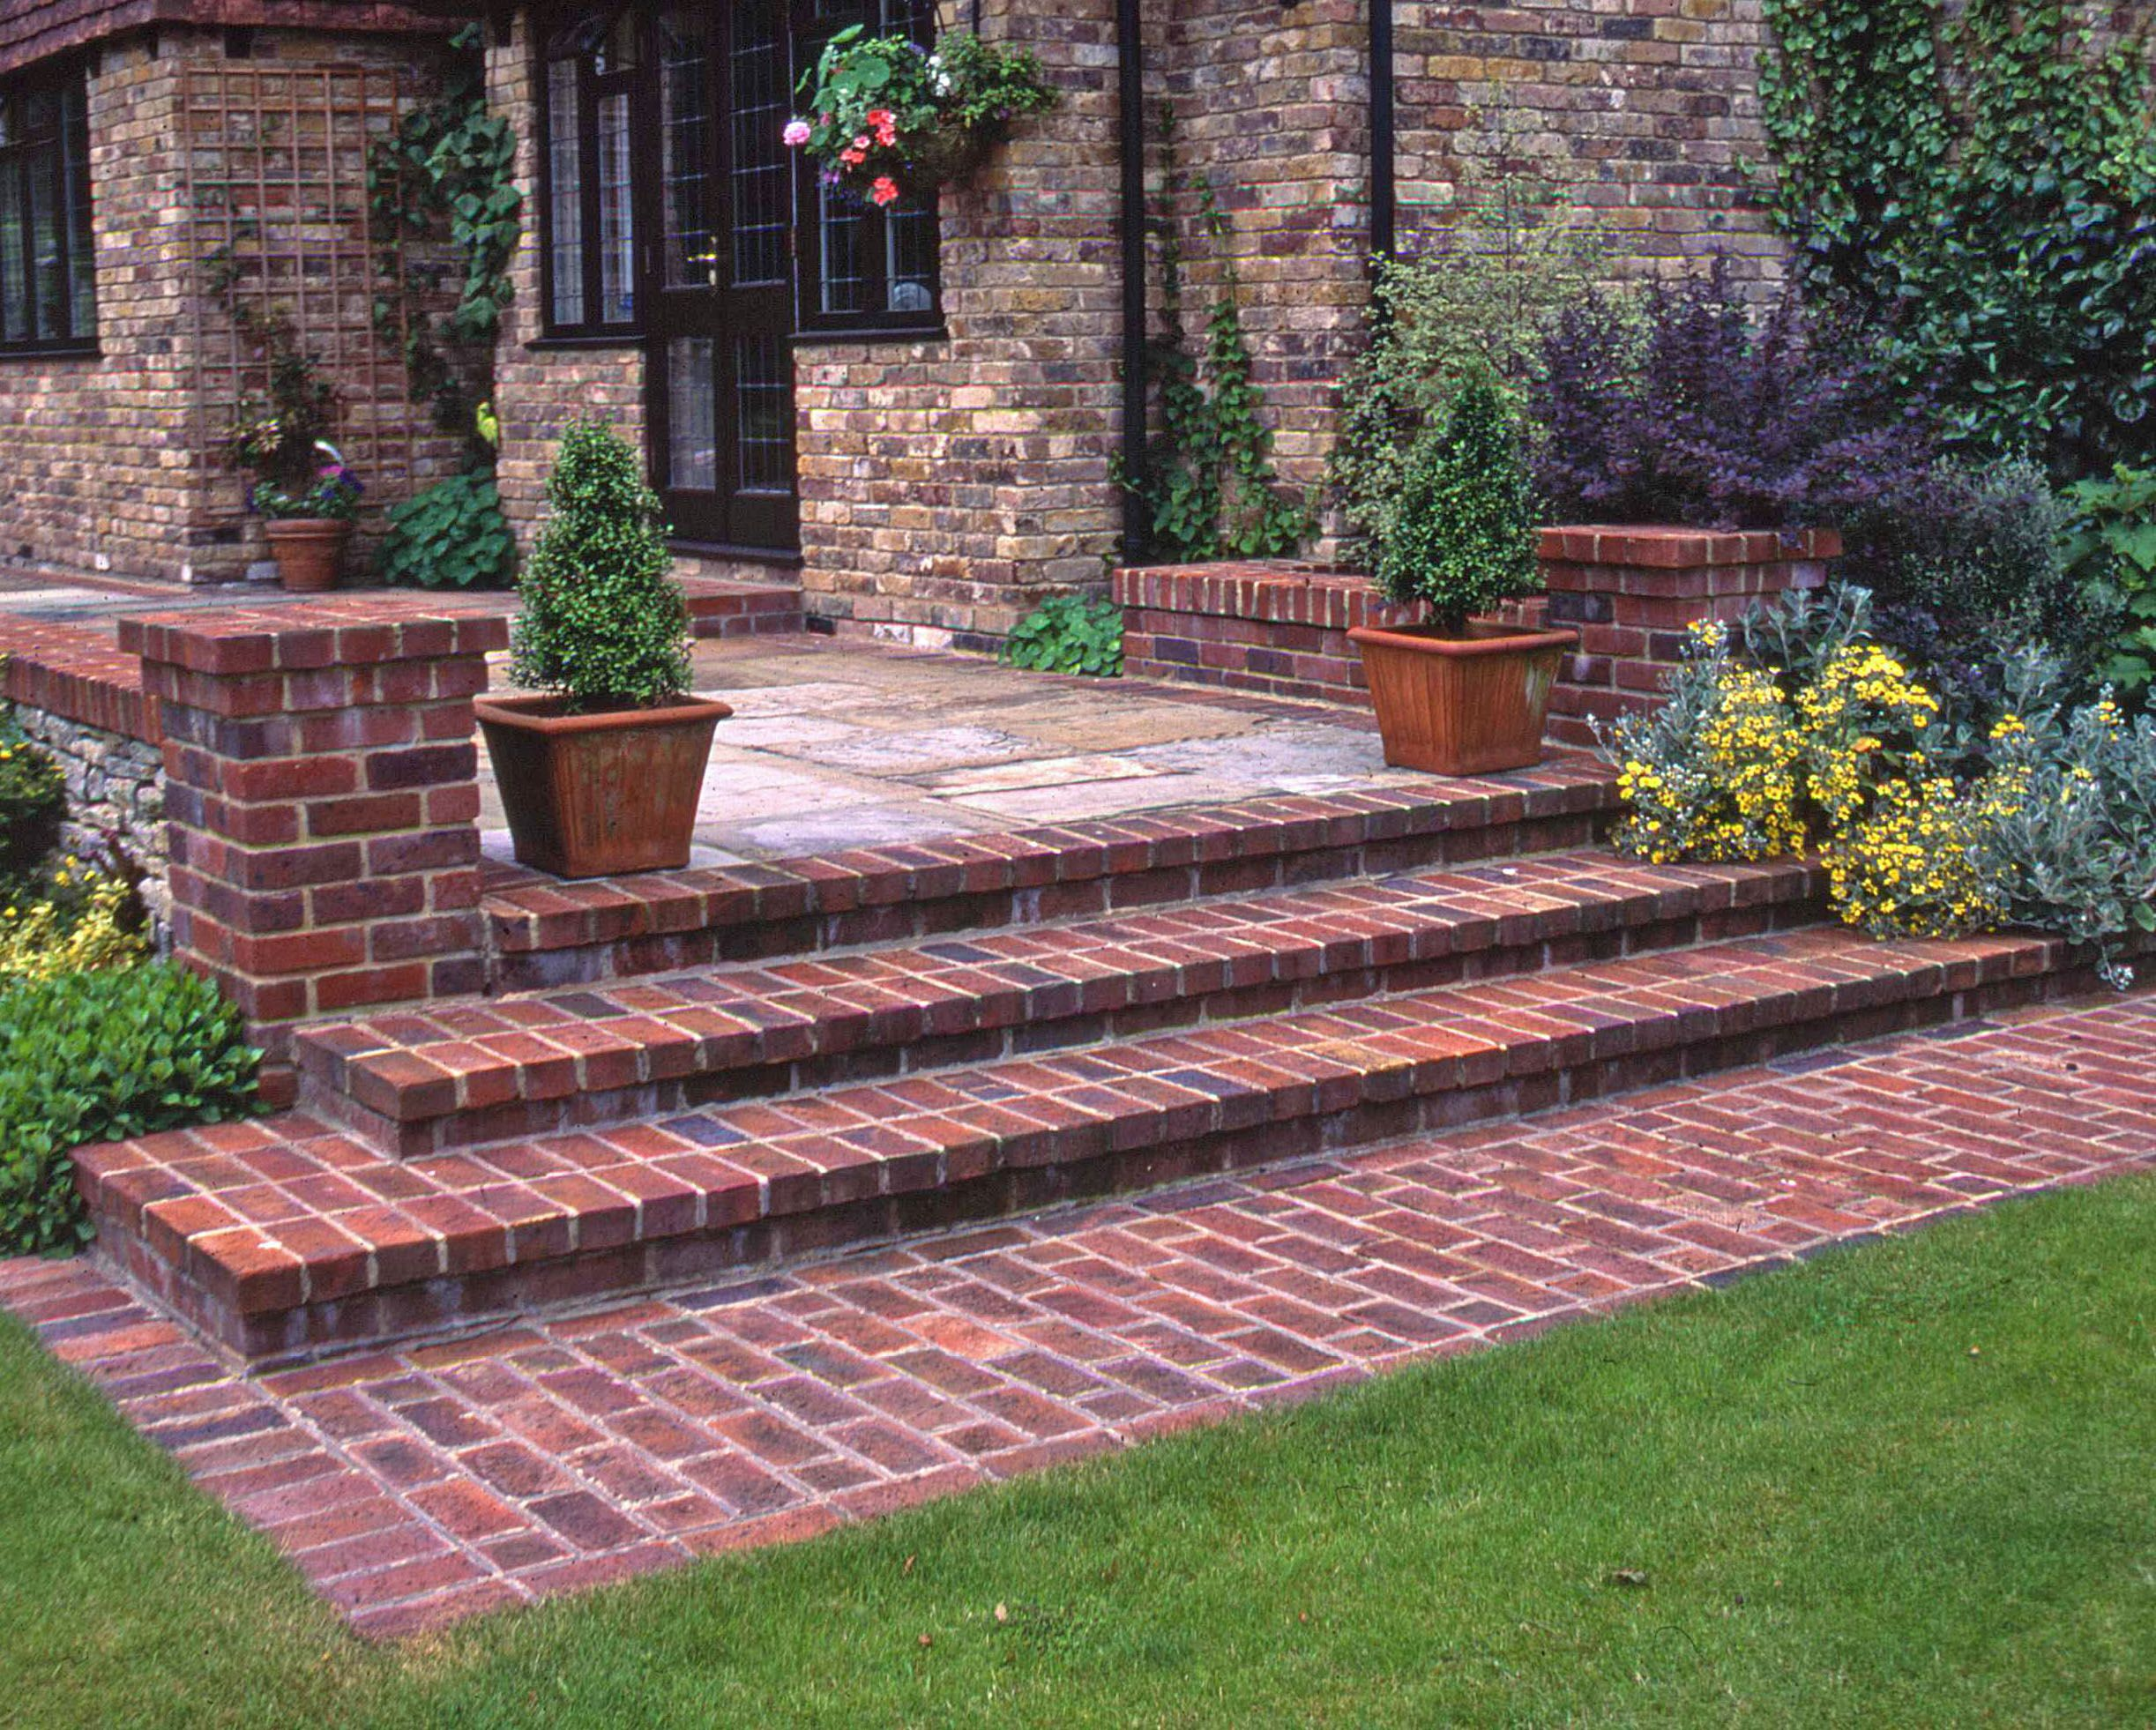 Pin by kelly bowden on house ideas pinterest for Brick steps design ideas